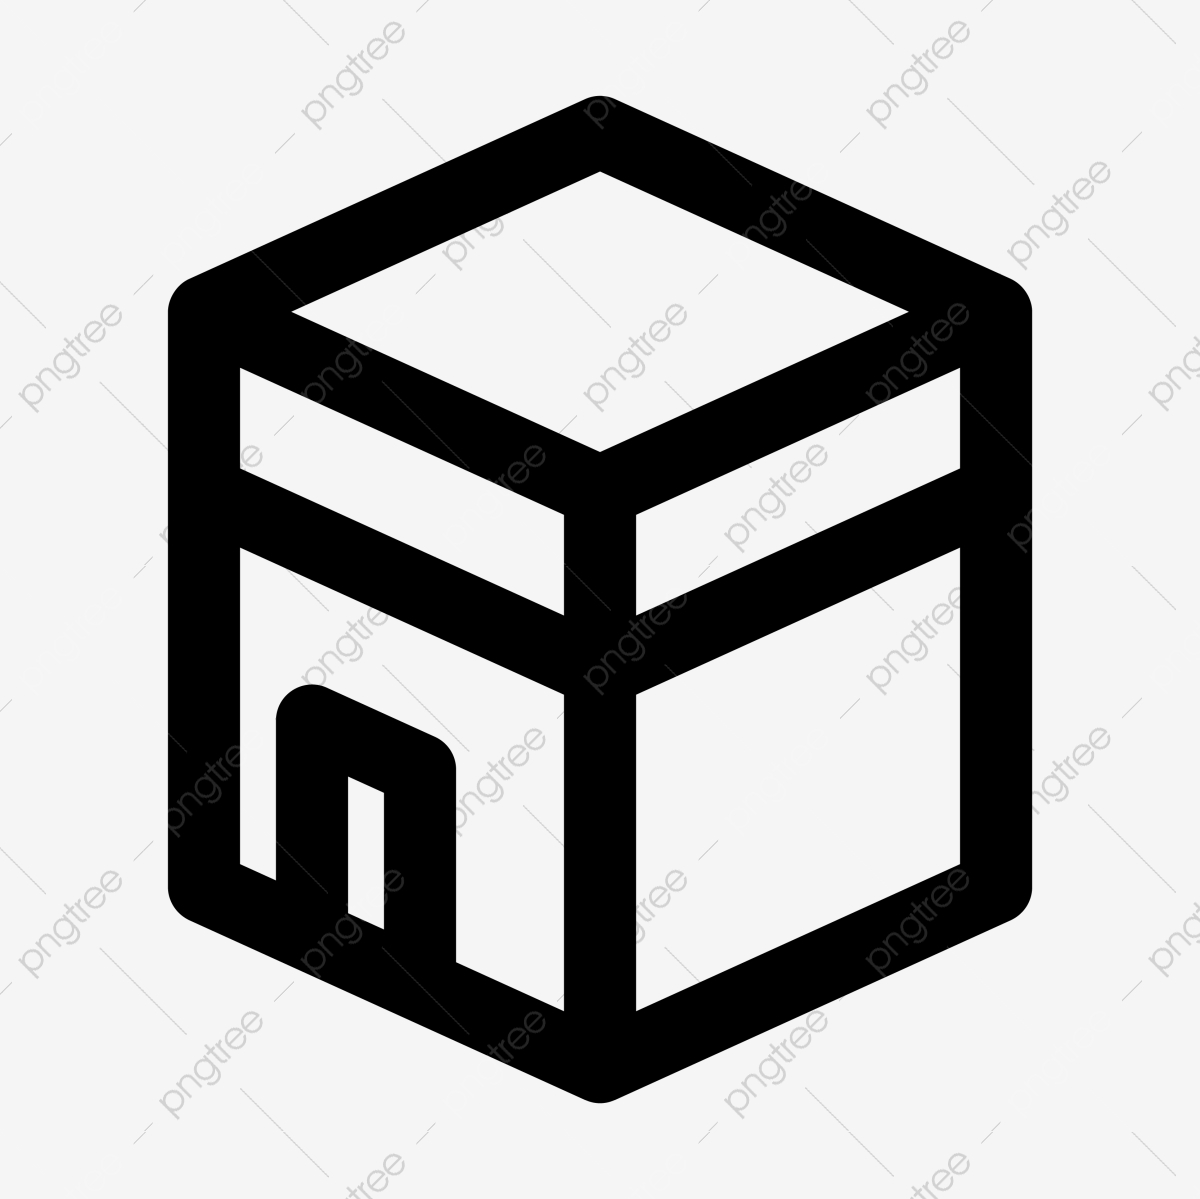 kabah line icon vector line icons kabah hajj png and vector with transparent background for free download https pngtree com freepng kabah line icon vector 5199624 html